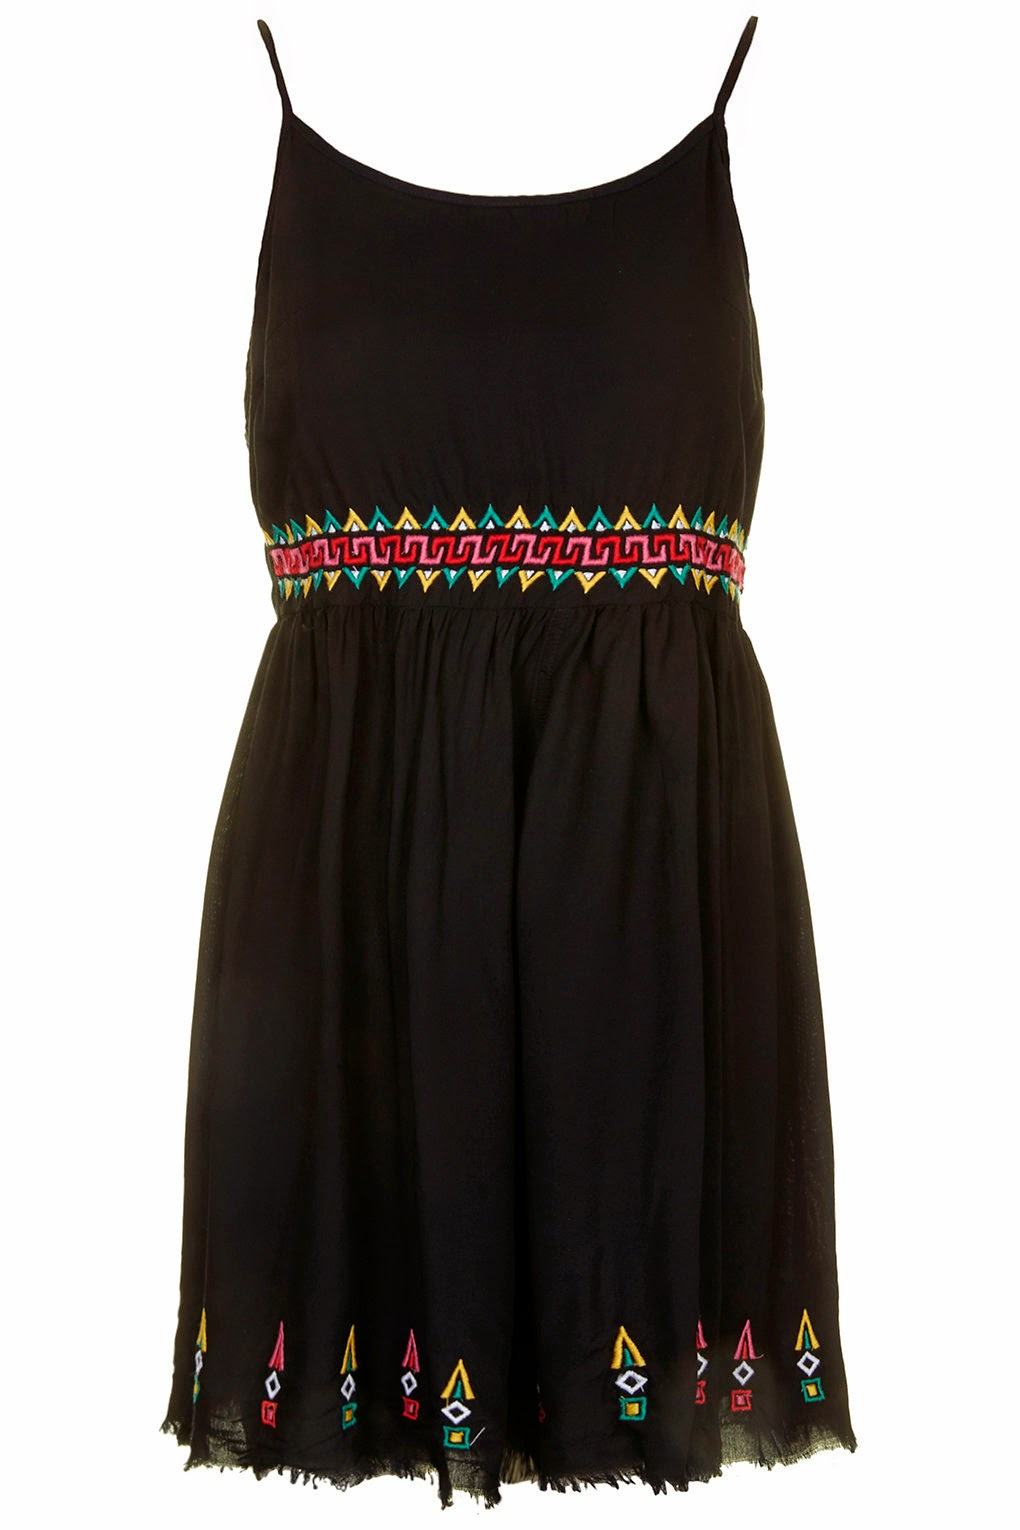 black frayed dress